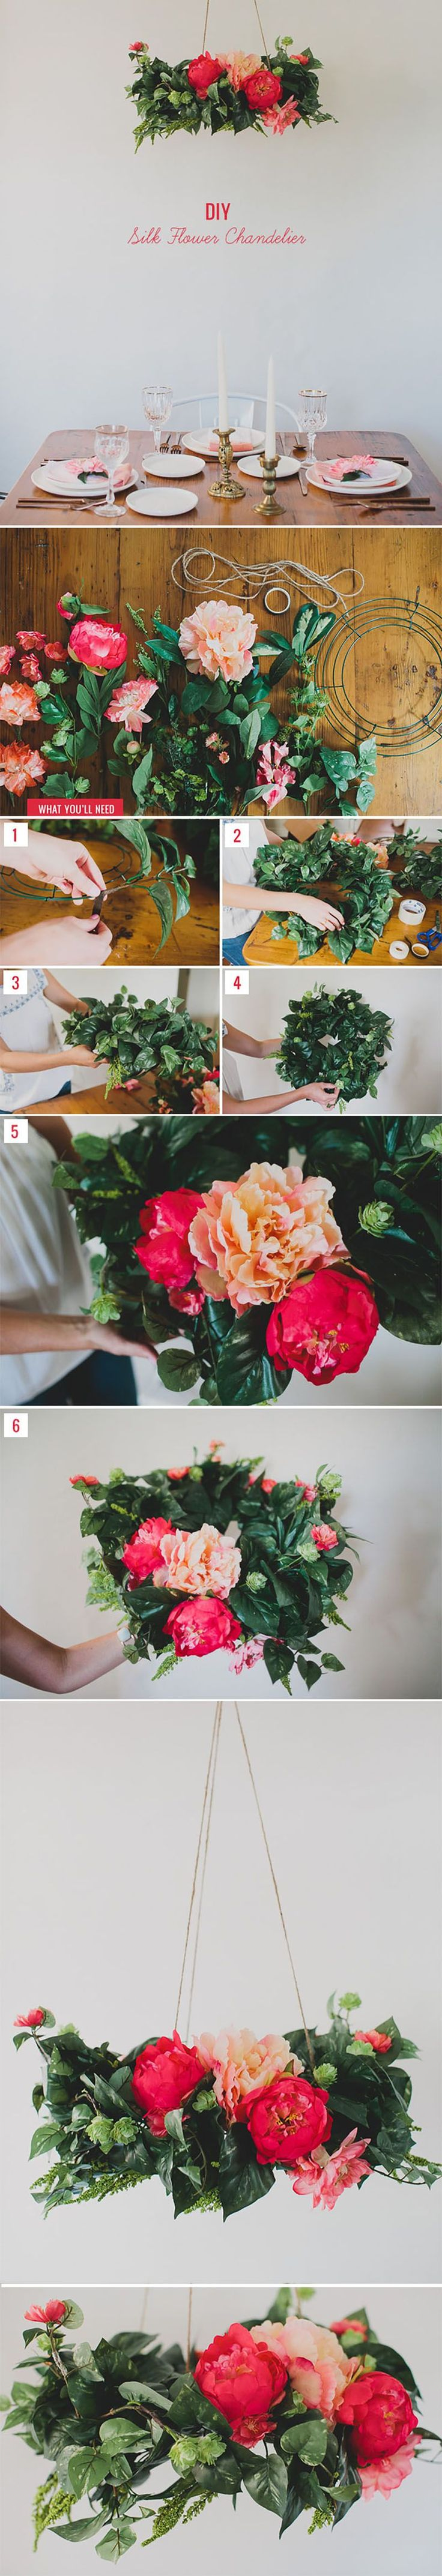 DIY Silk Flower Chandelier.  Designed by Green Wedding Shoes with faux flowers and greenery from Afloral.com.  Follow this easy DIY for a cheap wedding centerpiece that your guests will love!